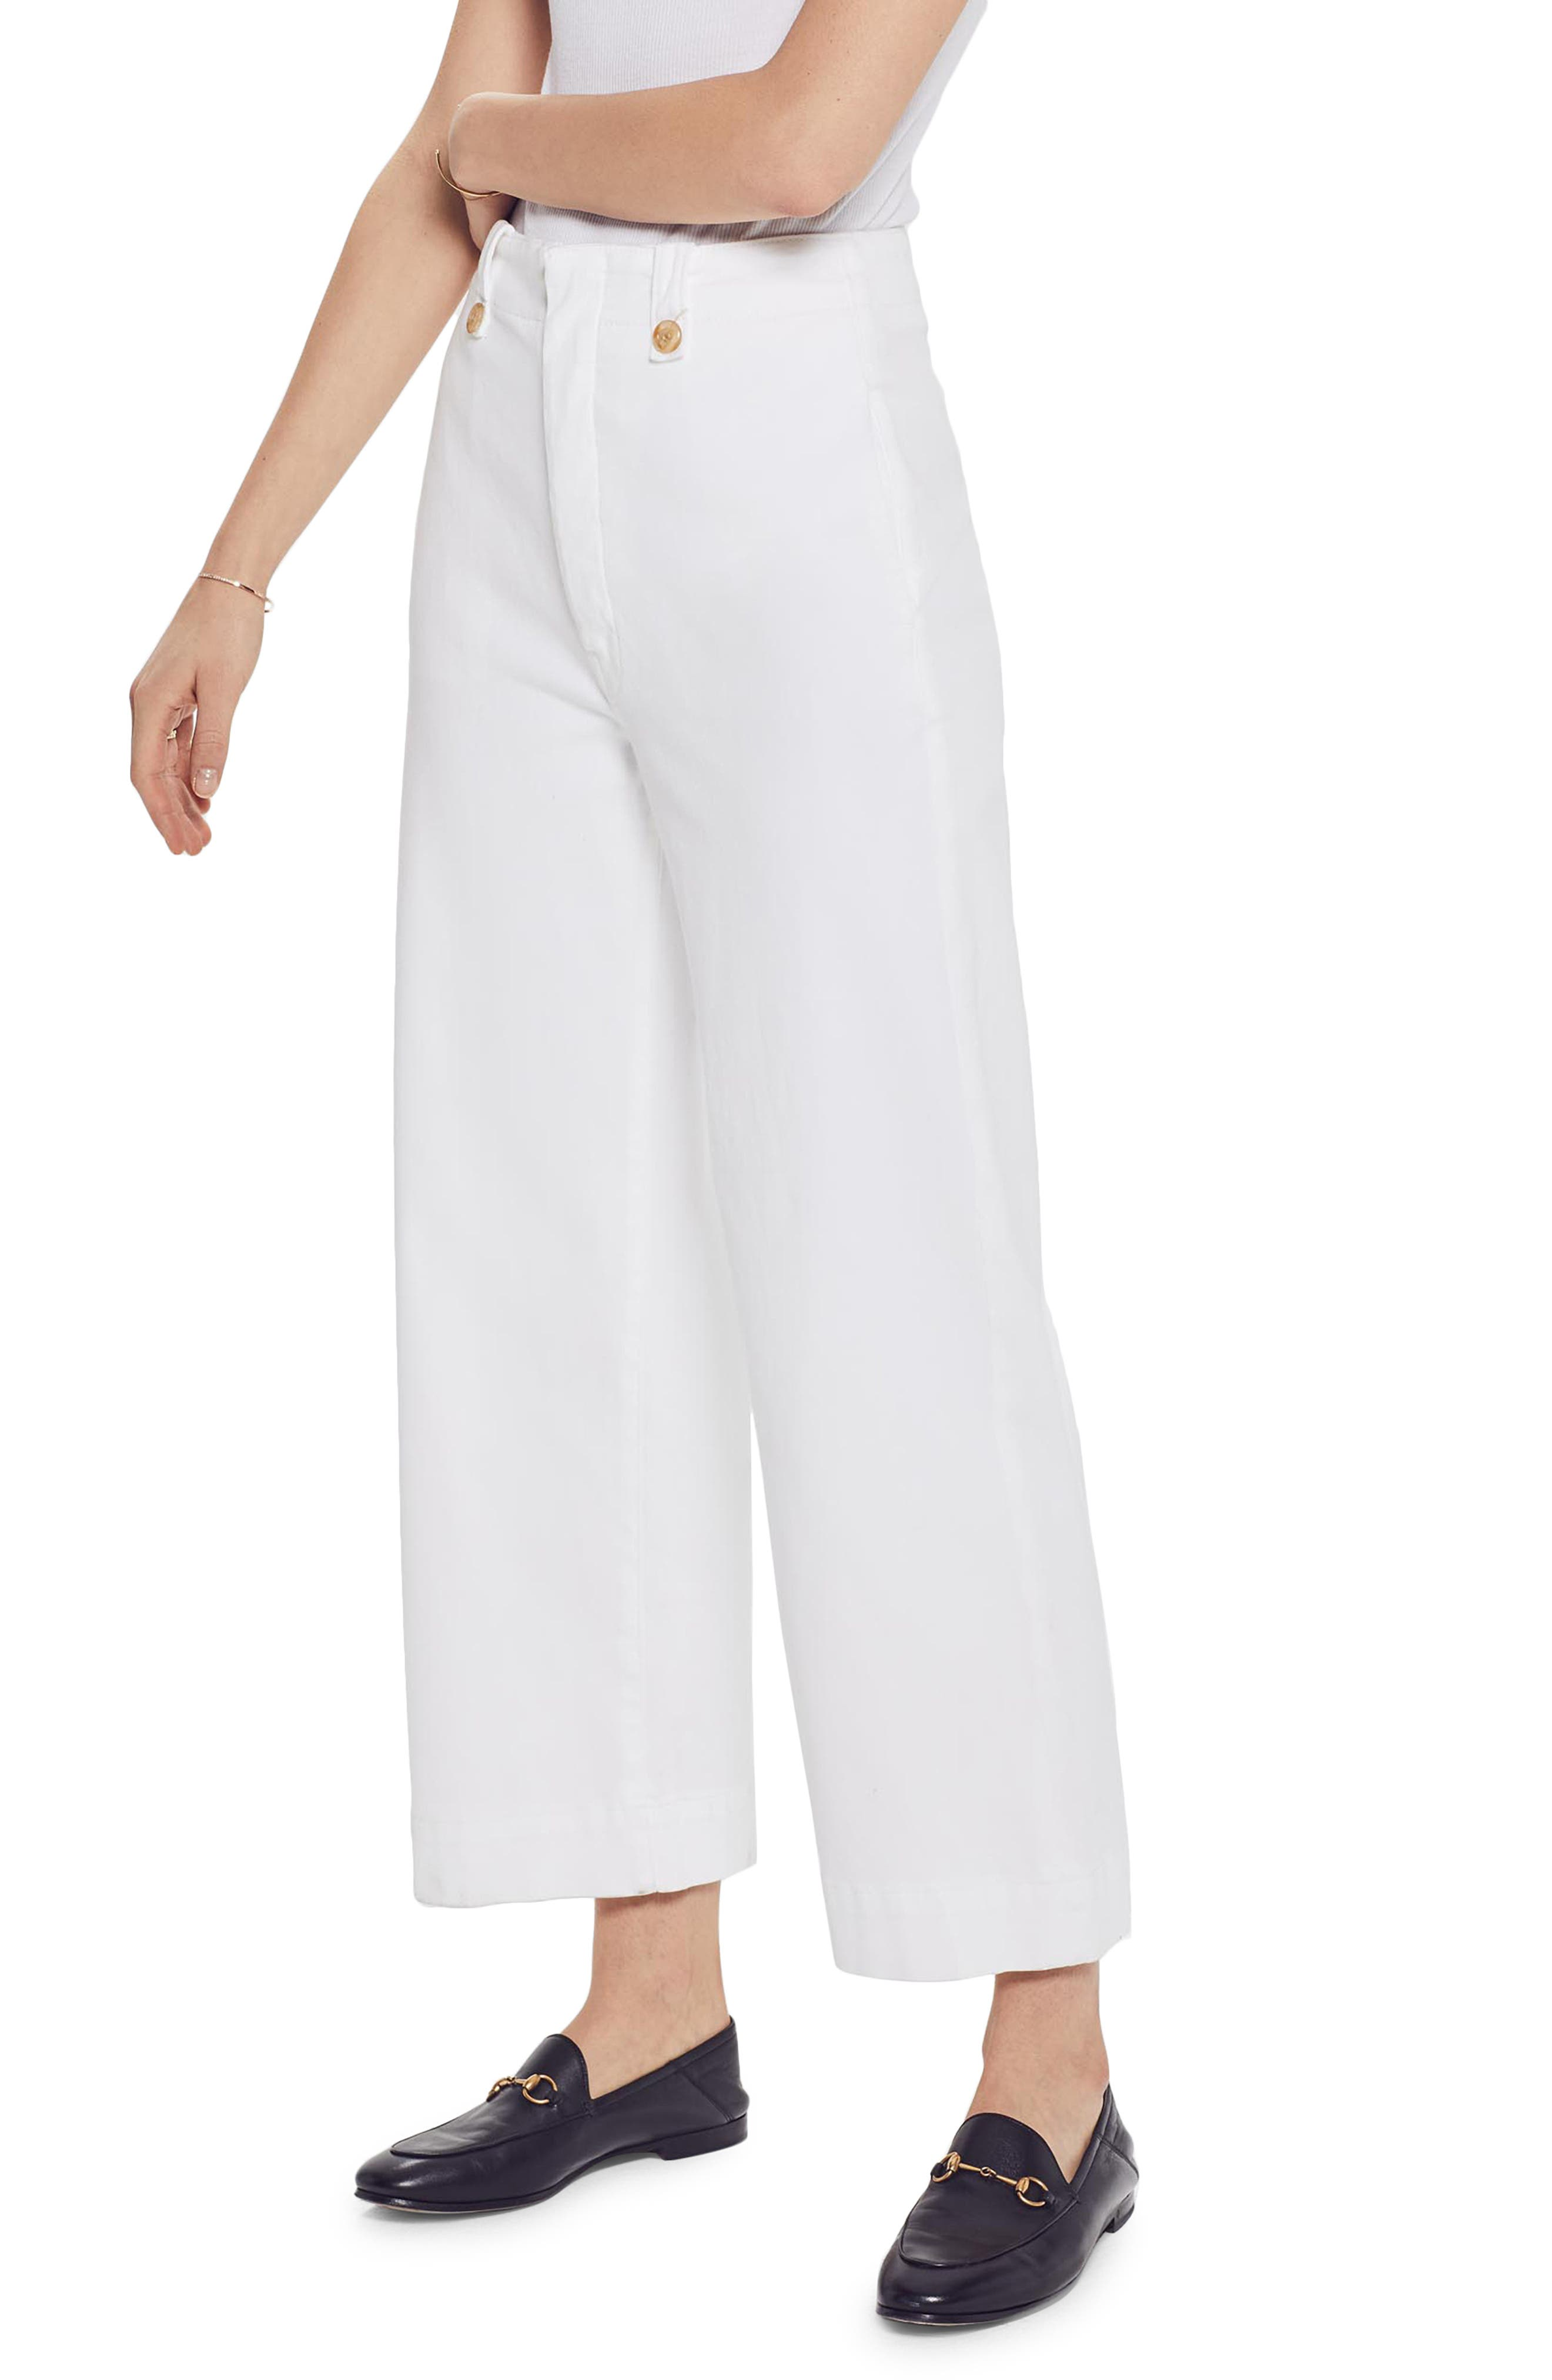 MOTHER, The Greaser Crop Wide Leg Jeans, Main thumbnail 1, color, GLASS SLIPPER